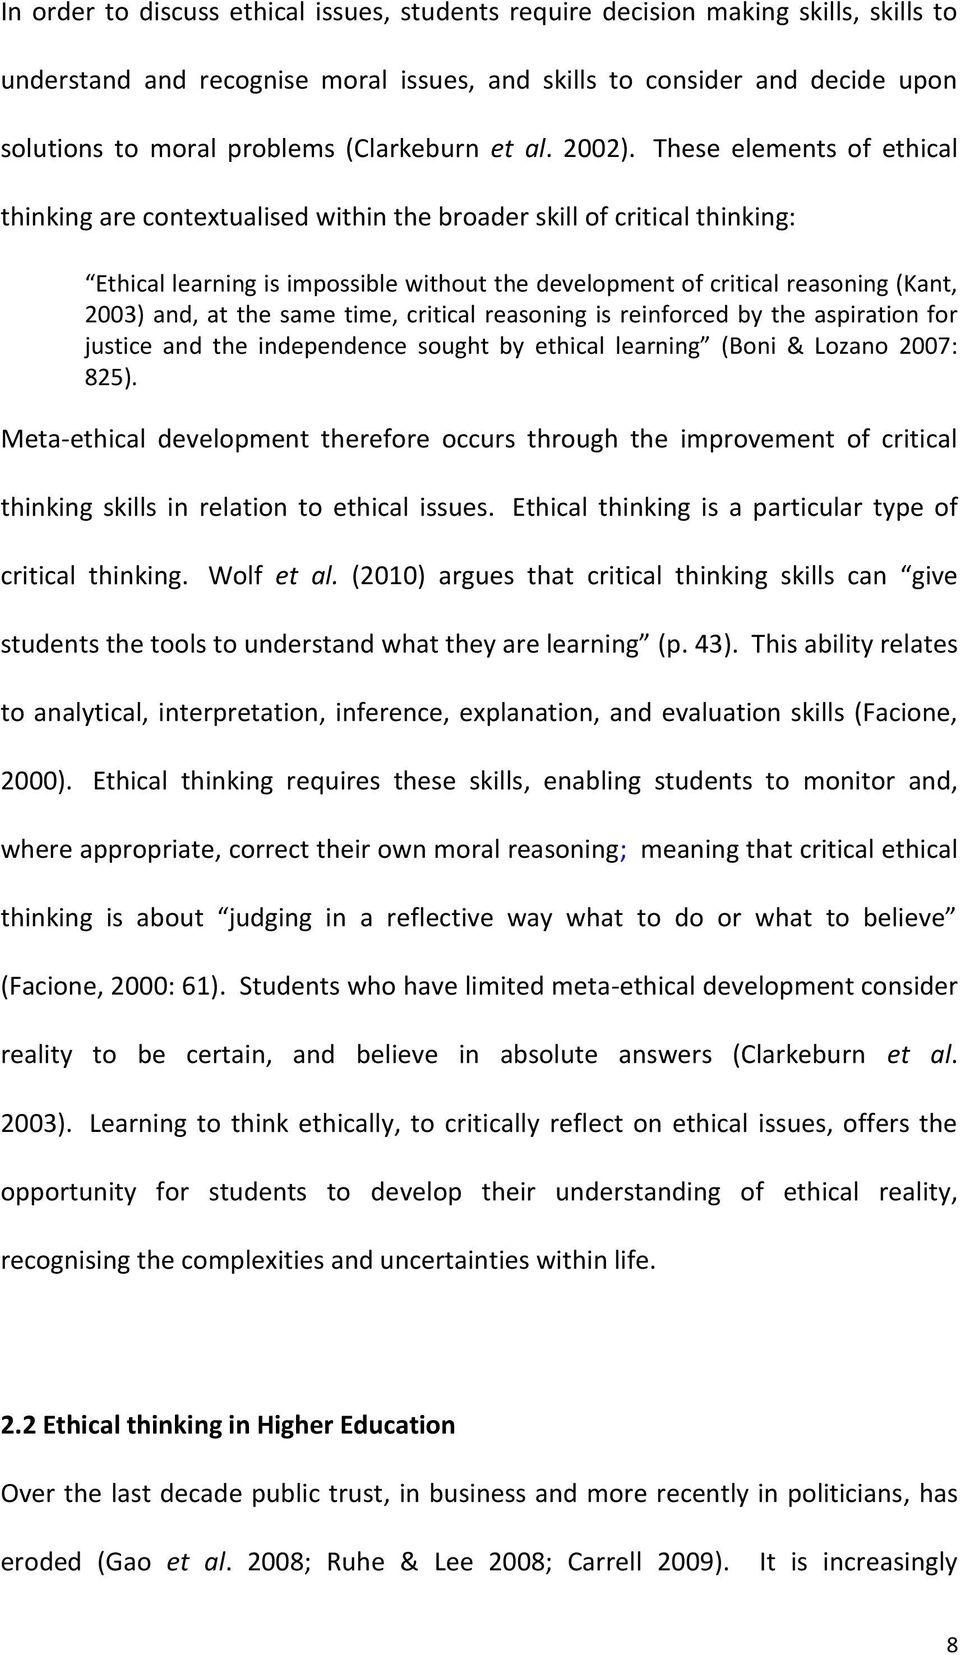 Role of critical thinking in ethics and professional behavior